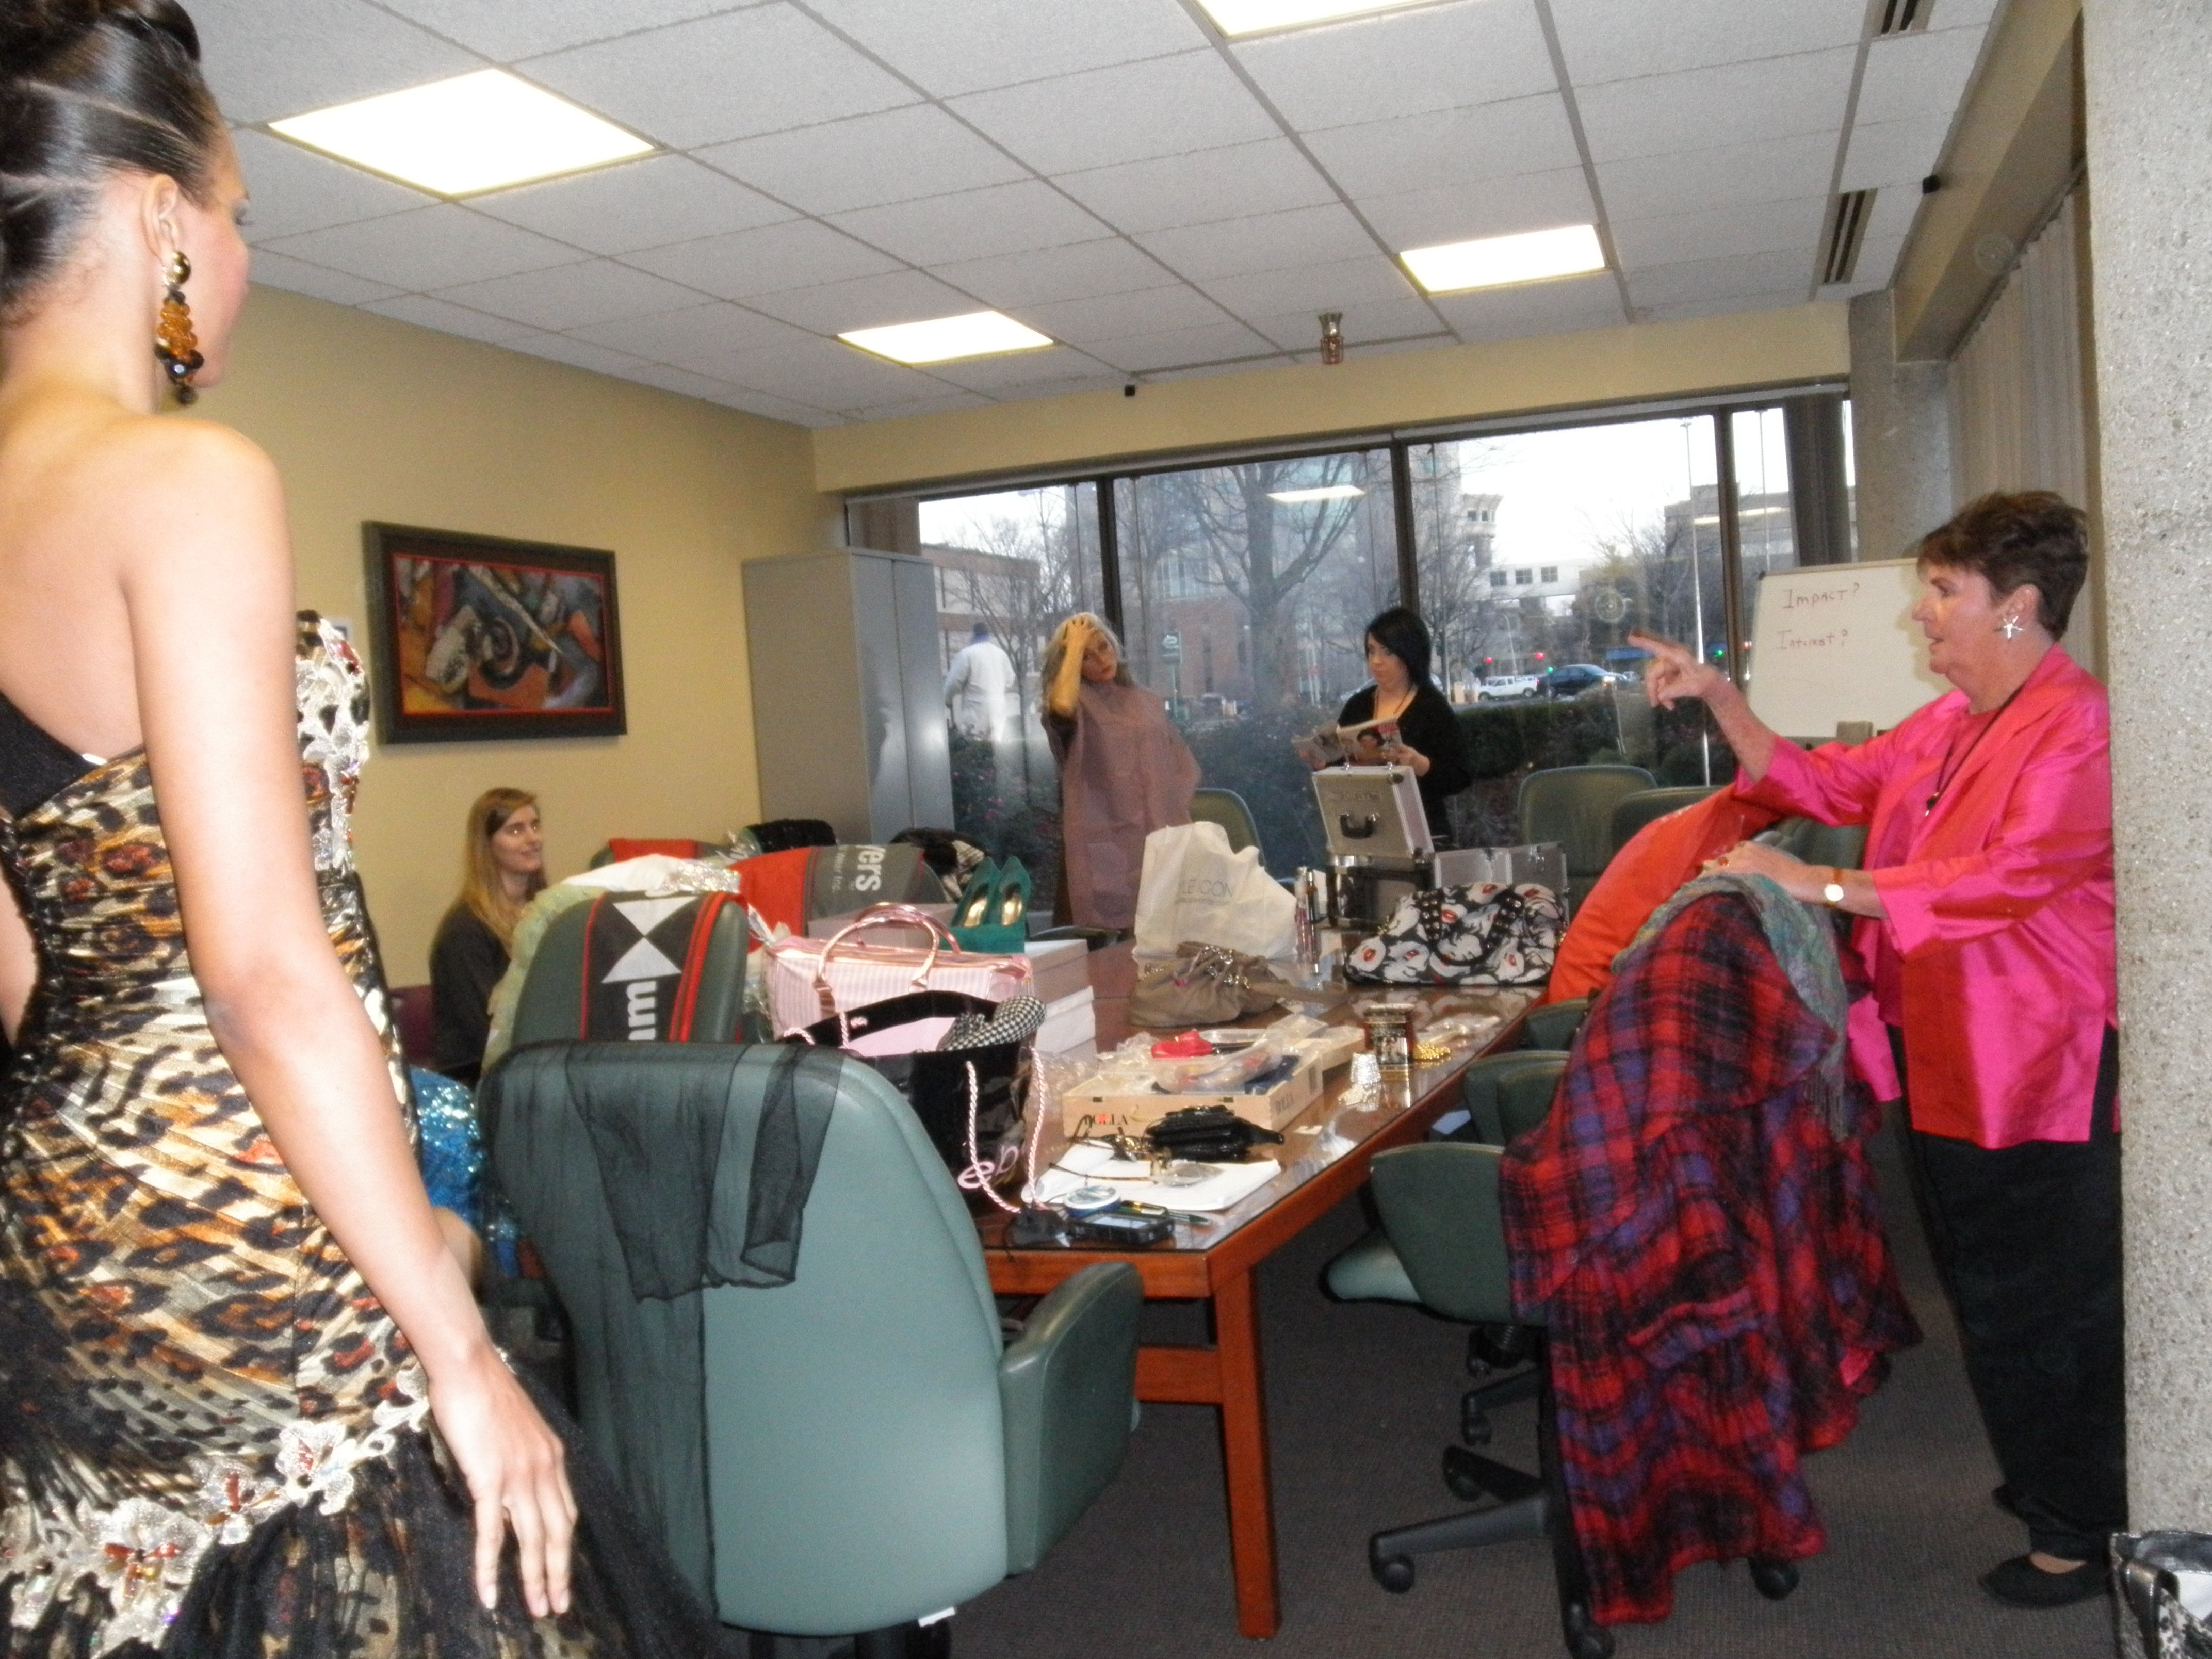 These models take over the conference room to get ready!